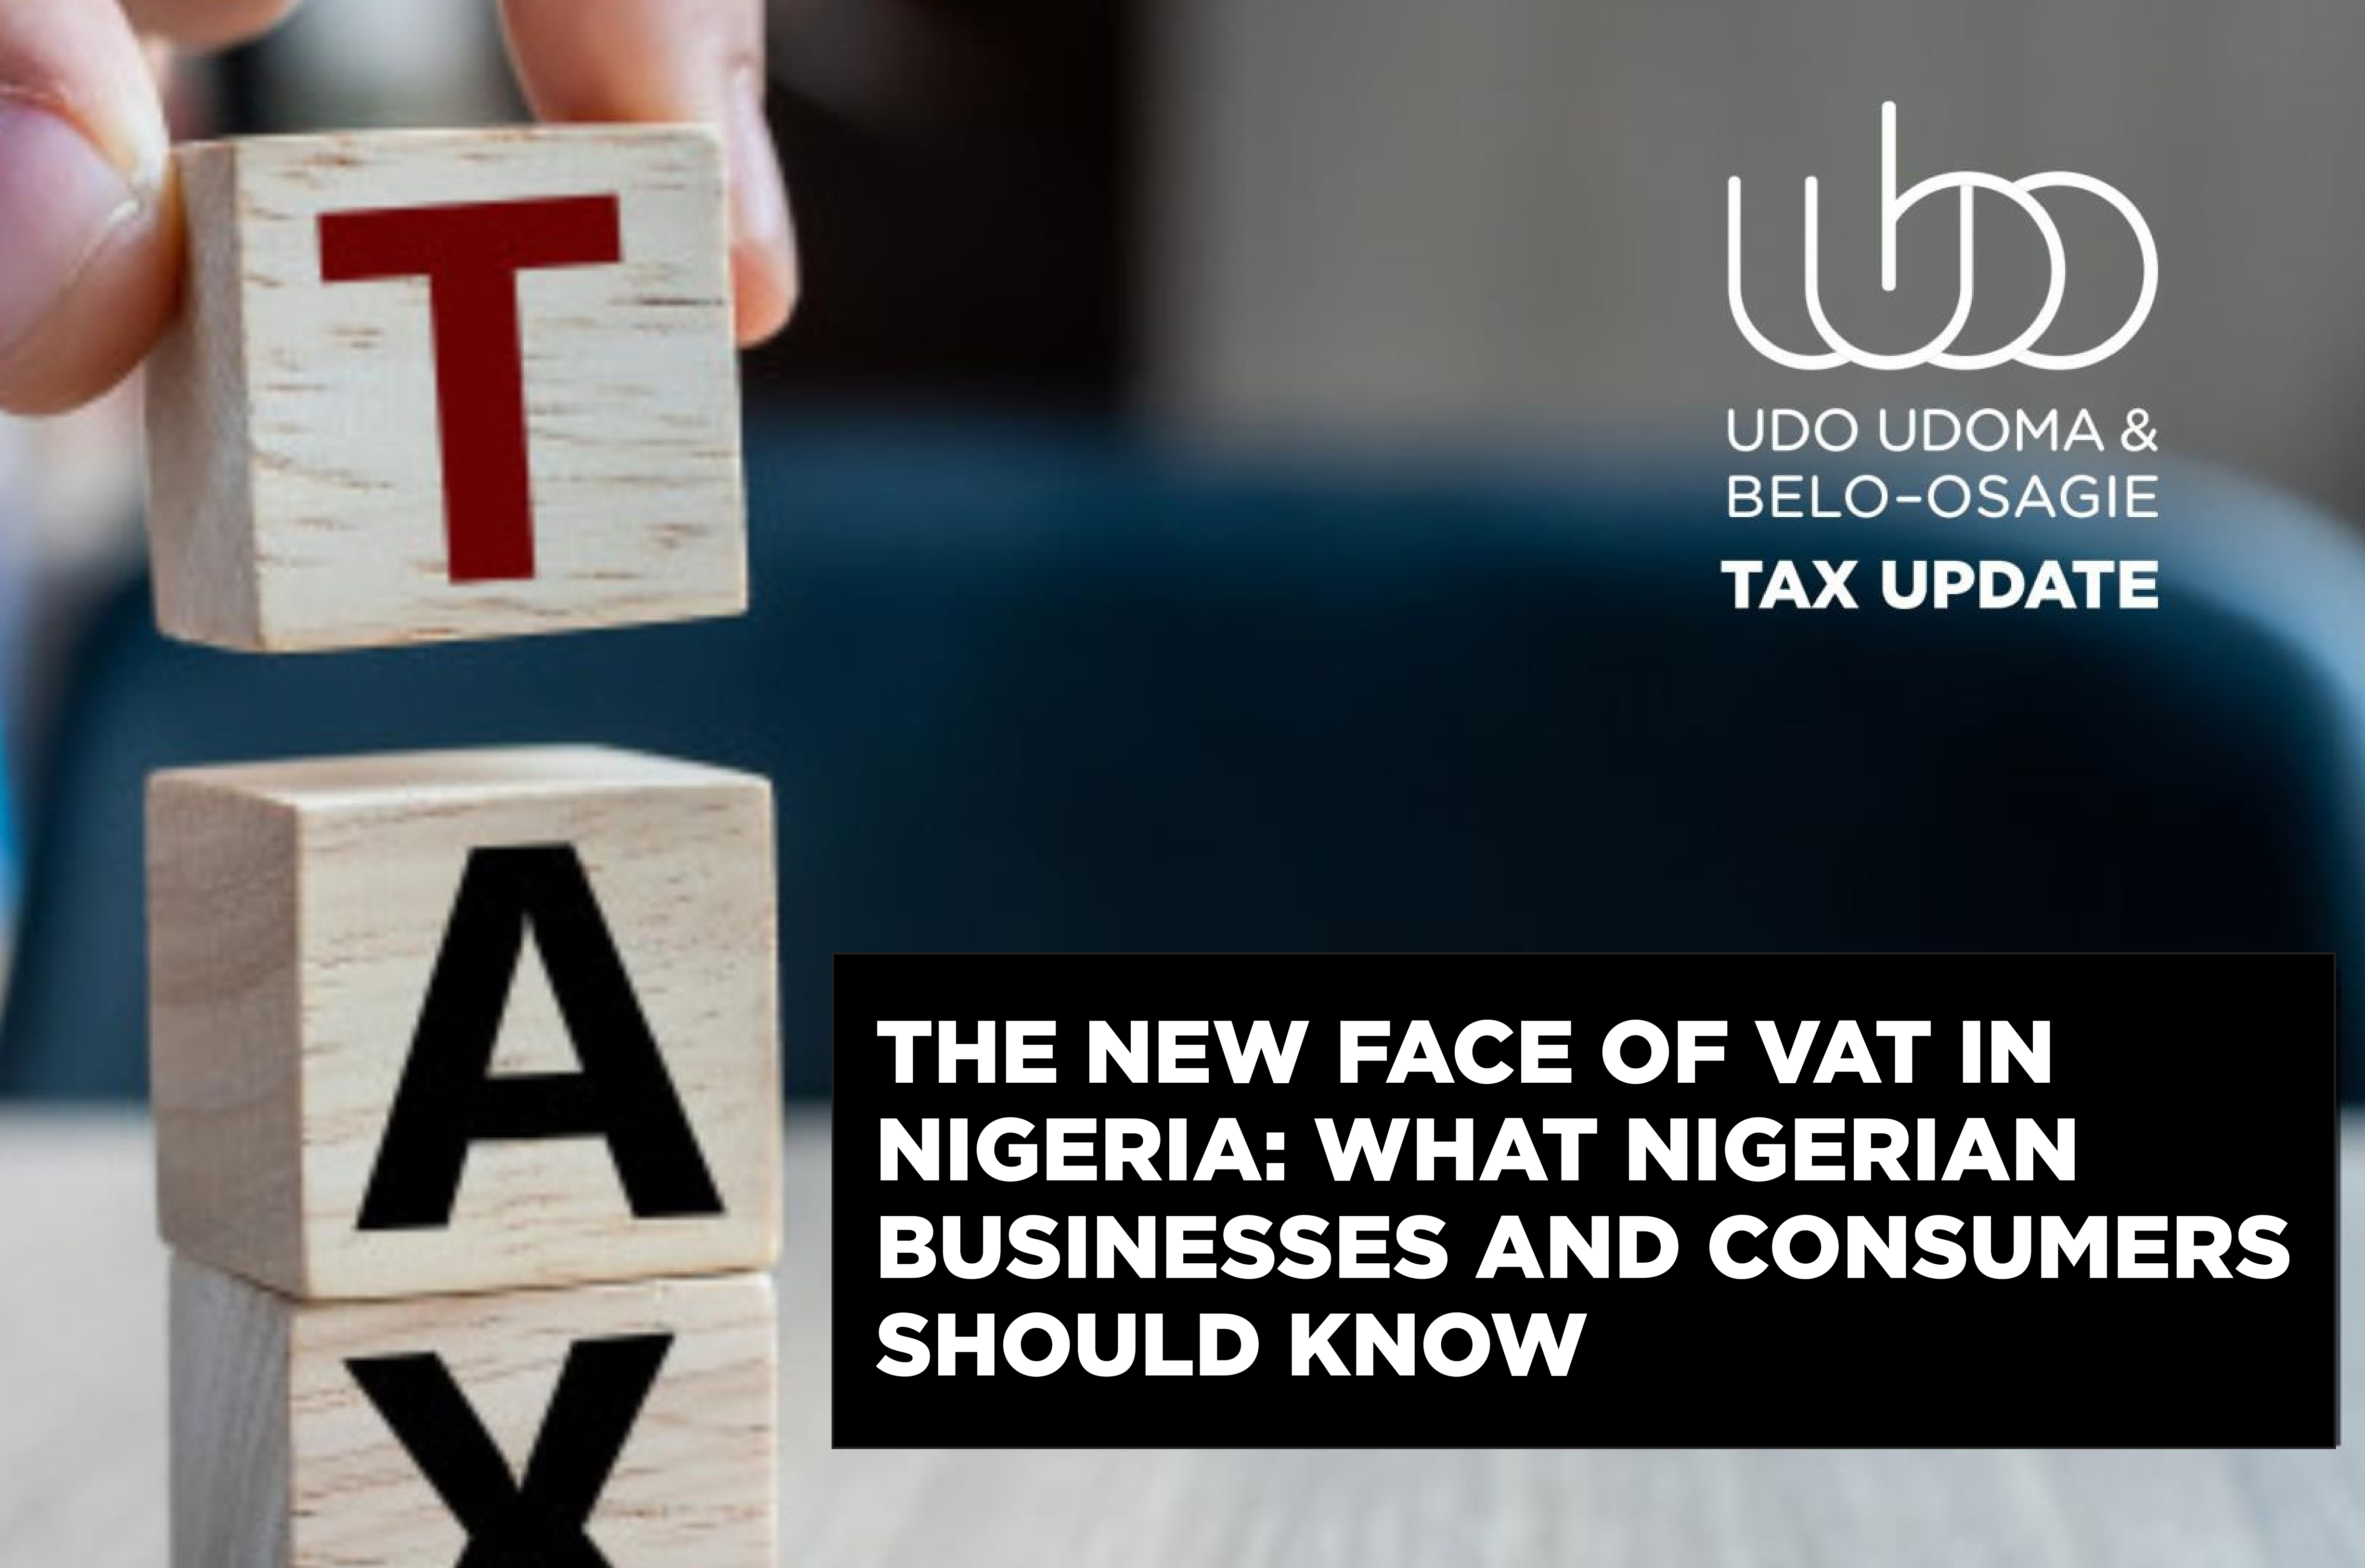 The New Face of VAT in Nigeria - What Nigerian Businesses and Consumers Should Know